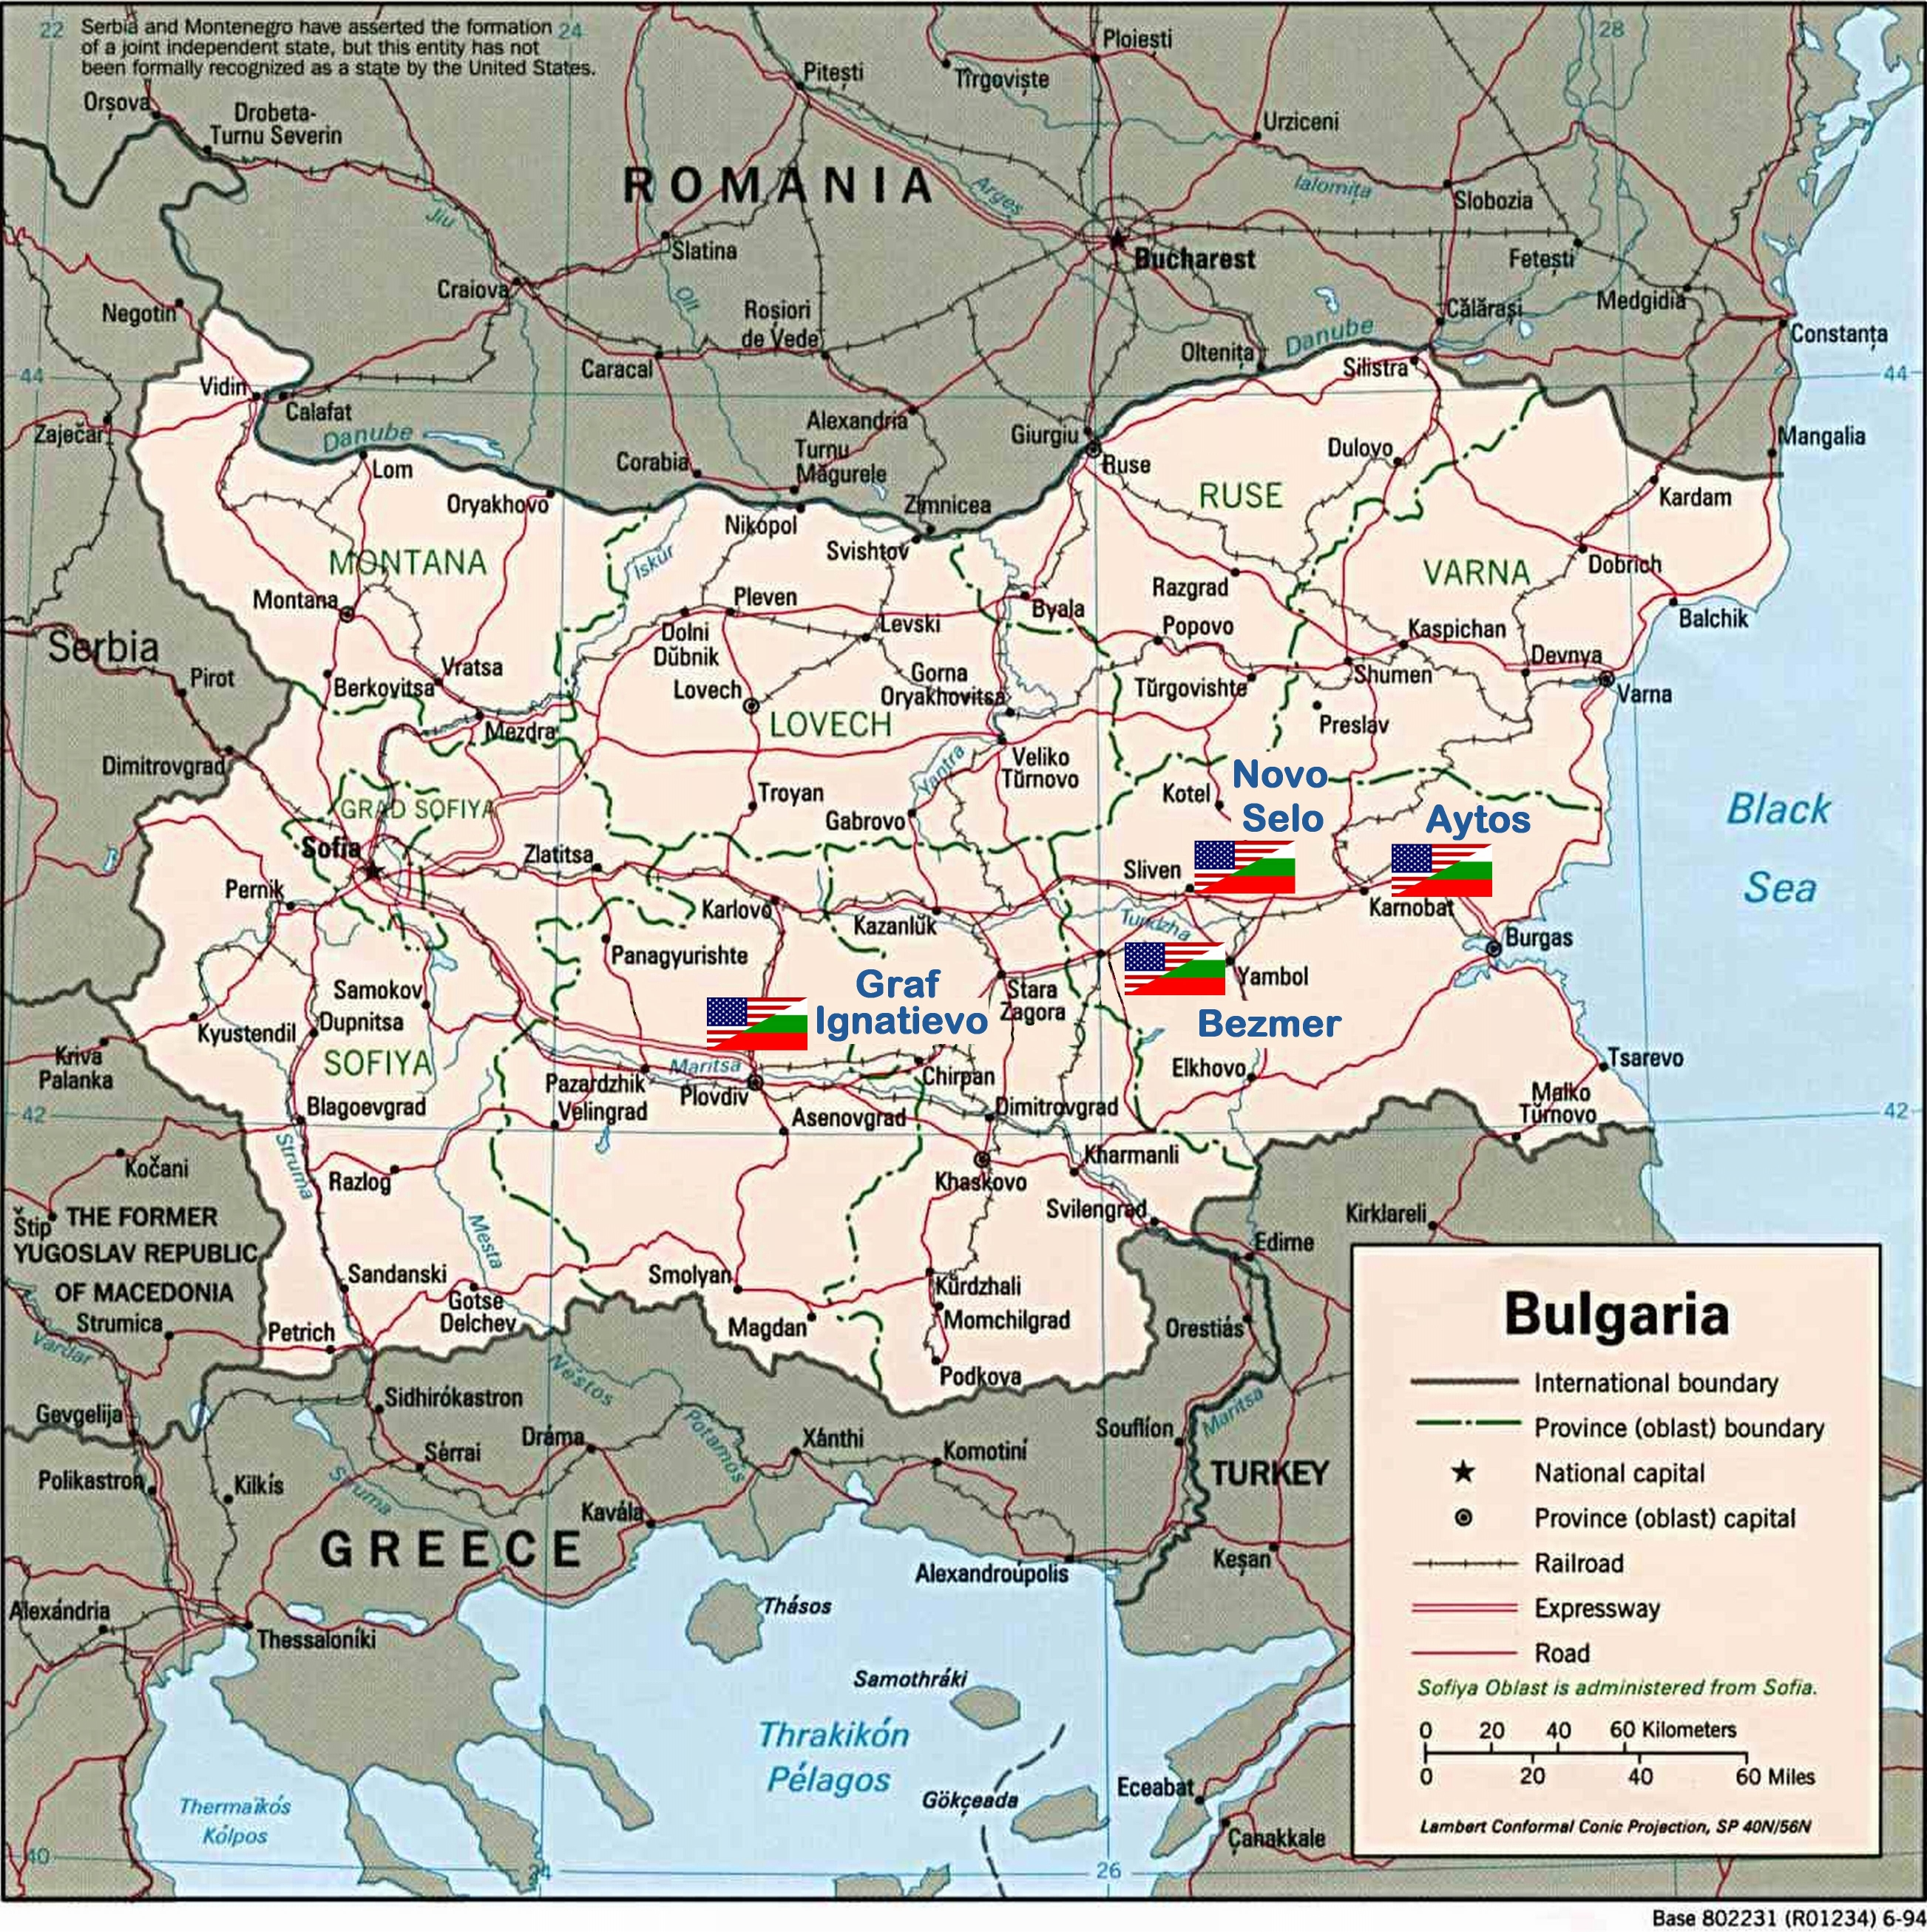 BulgarianAmerican Joint Military Facilities Wikiwand - Romania in us map